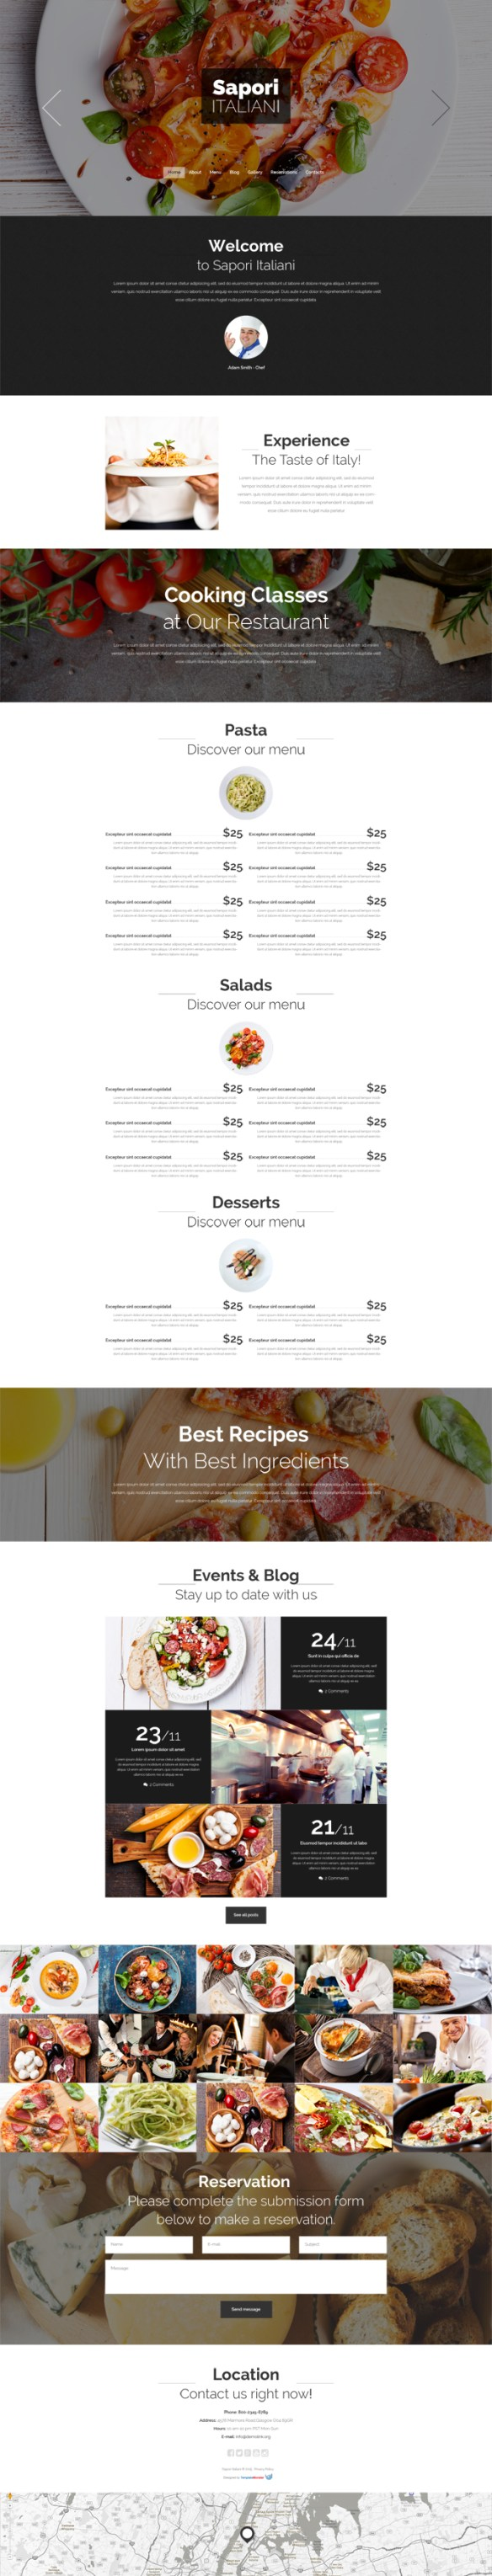 Free Drupal Theme for Restaurants